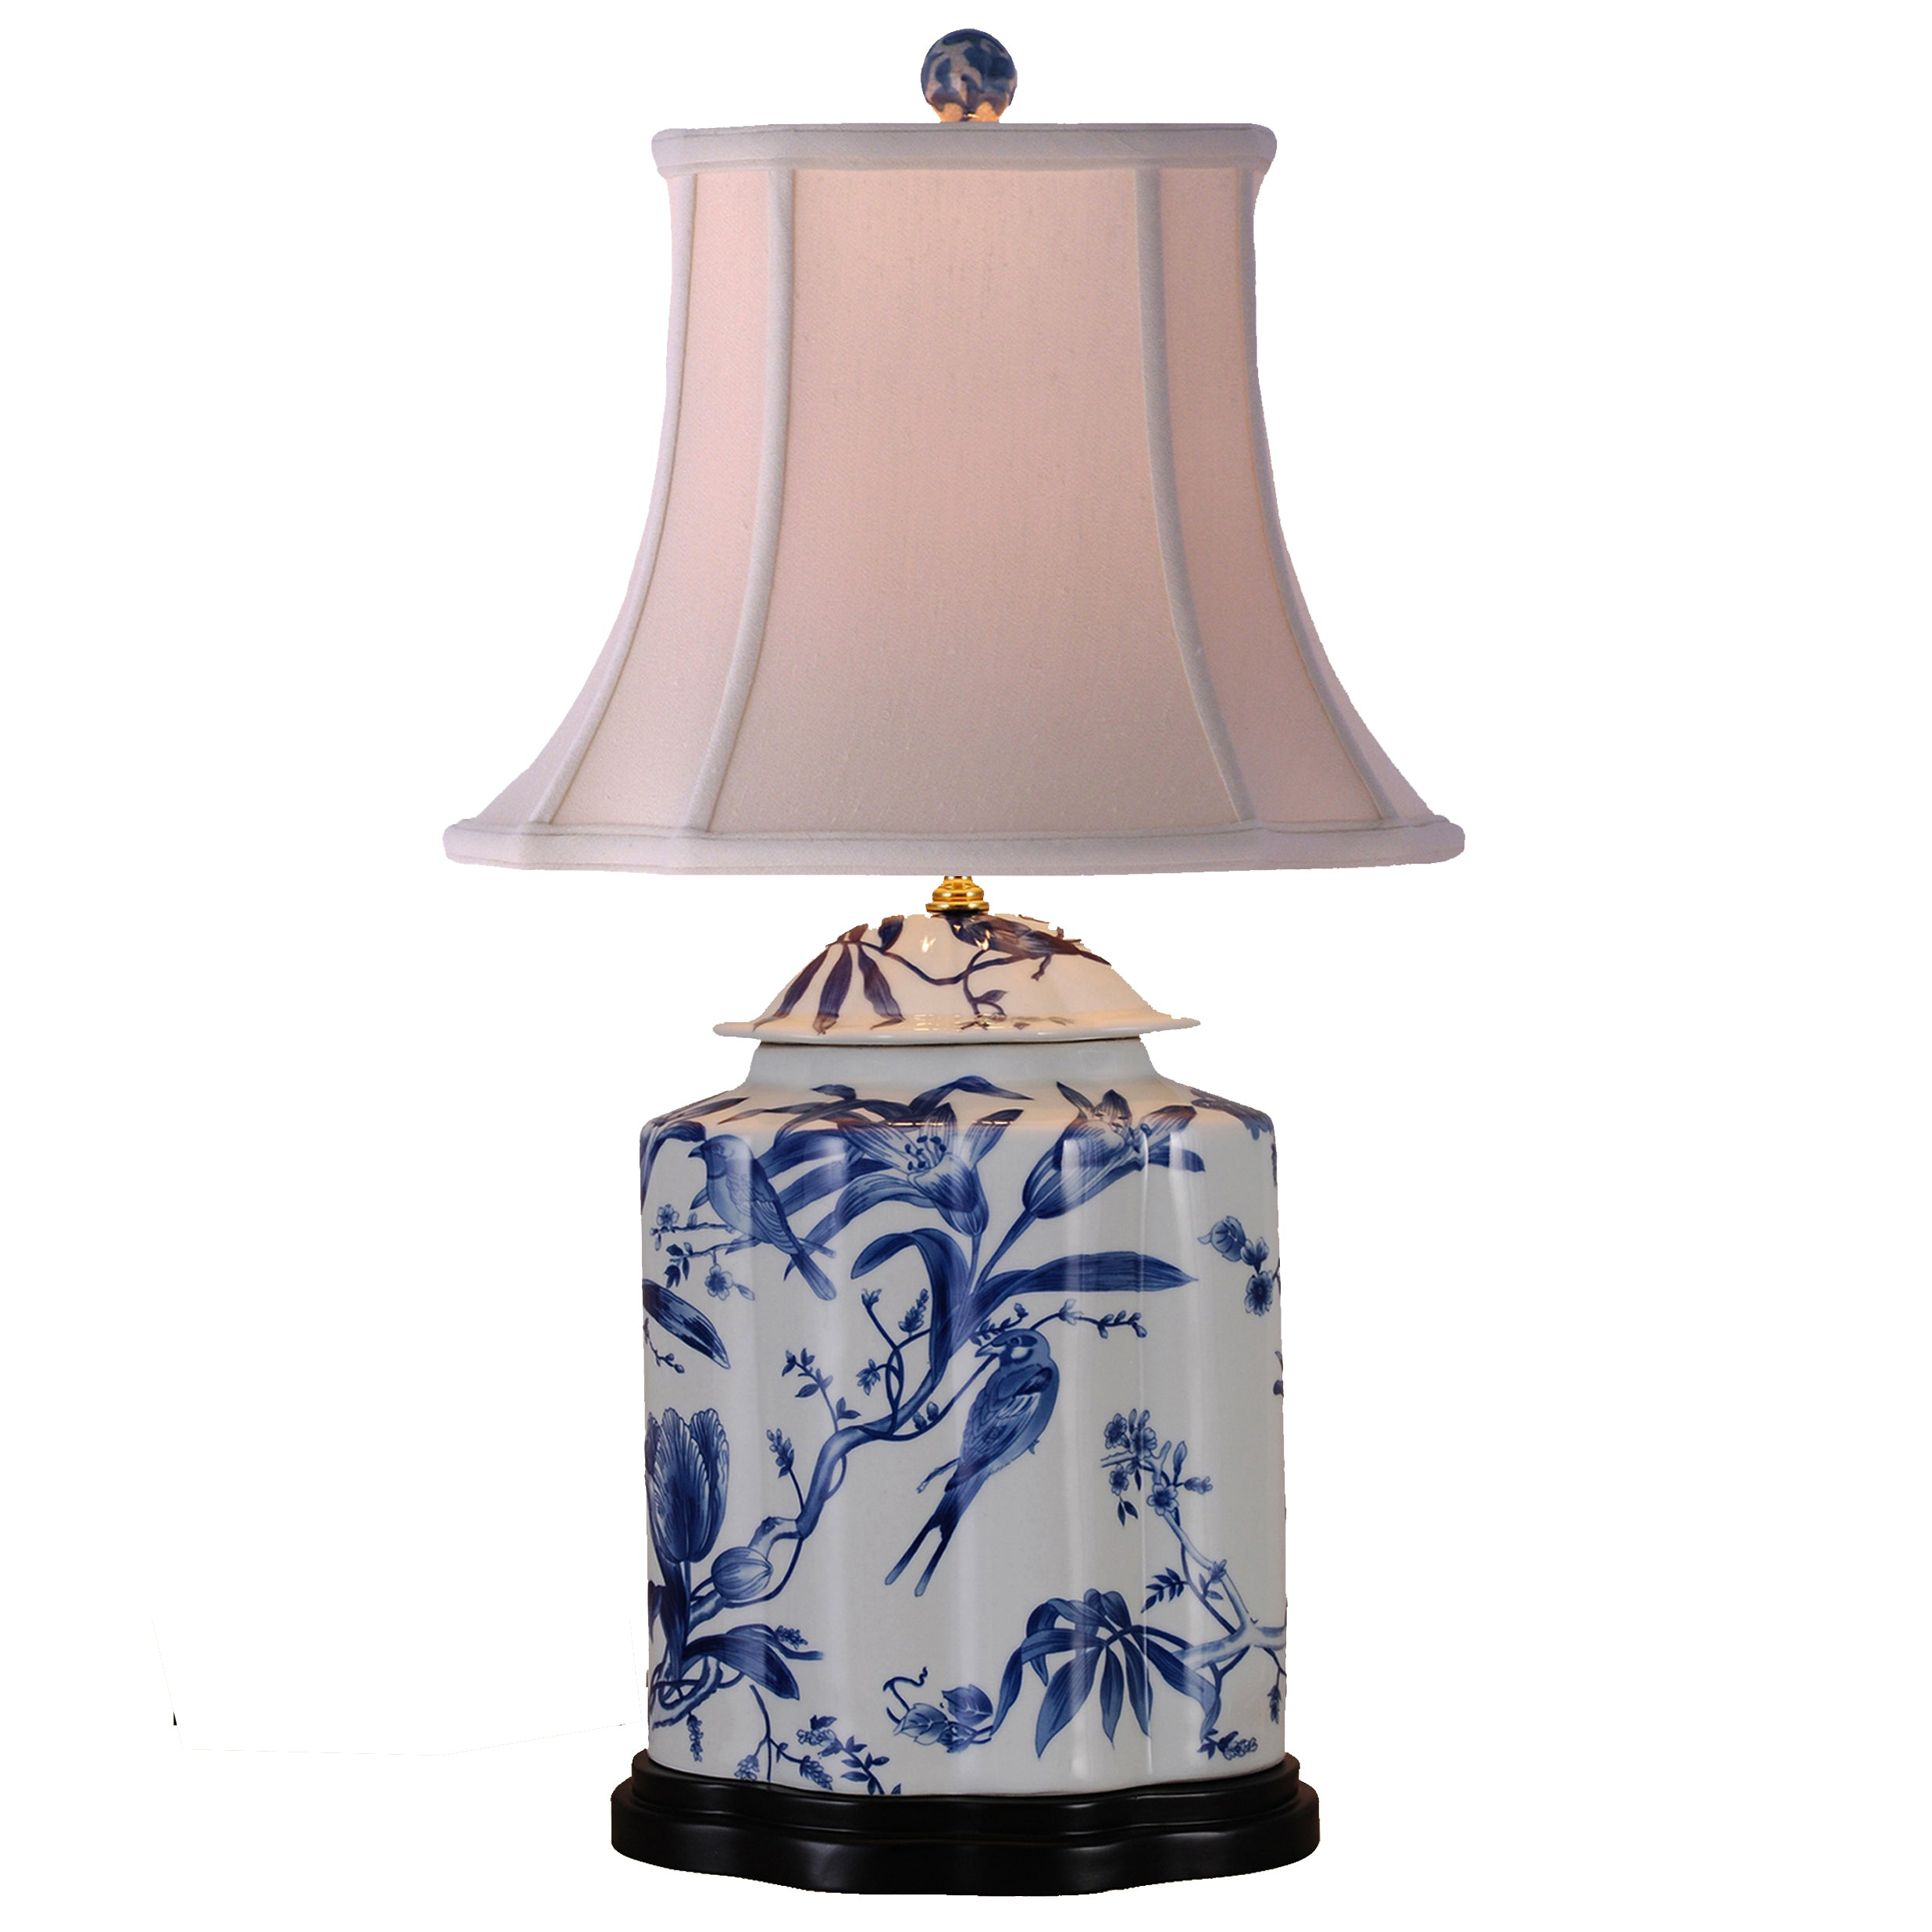 Paradise Birds Blue & White Porcelain Tea Jar Table Lamp